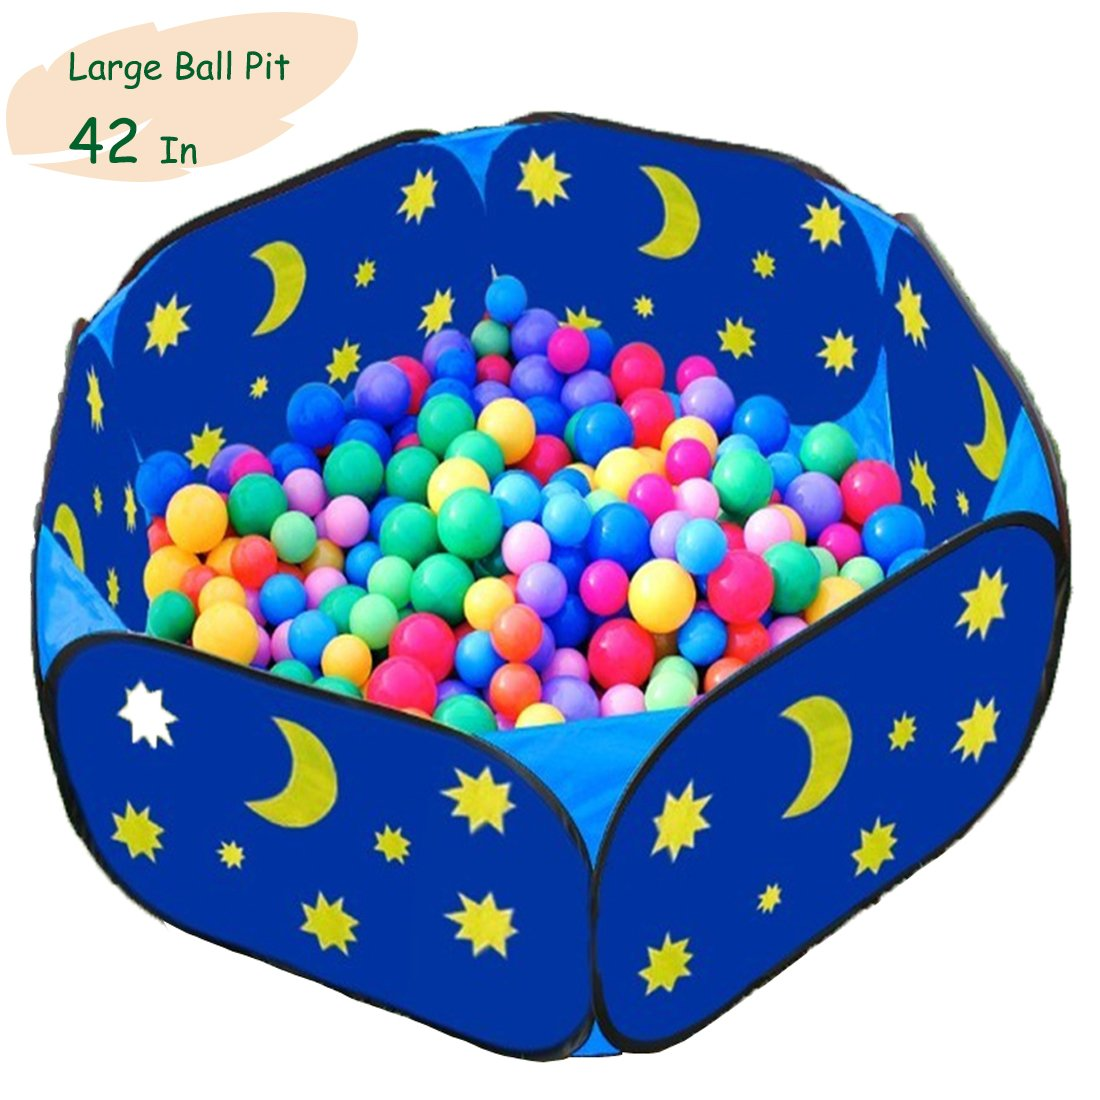 Eggsnow Kids Ball Pit Toddler Ball Pit Large Blue Baby Play Pit with Zippered Storage Bag Ideal for Toddlers Pets Indoor Outdoor Play Balls Not Included(42 Inch) Topbestsource FBA-WZ-Ballpit-XY